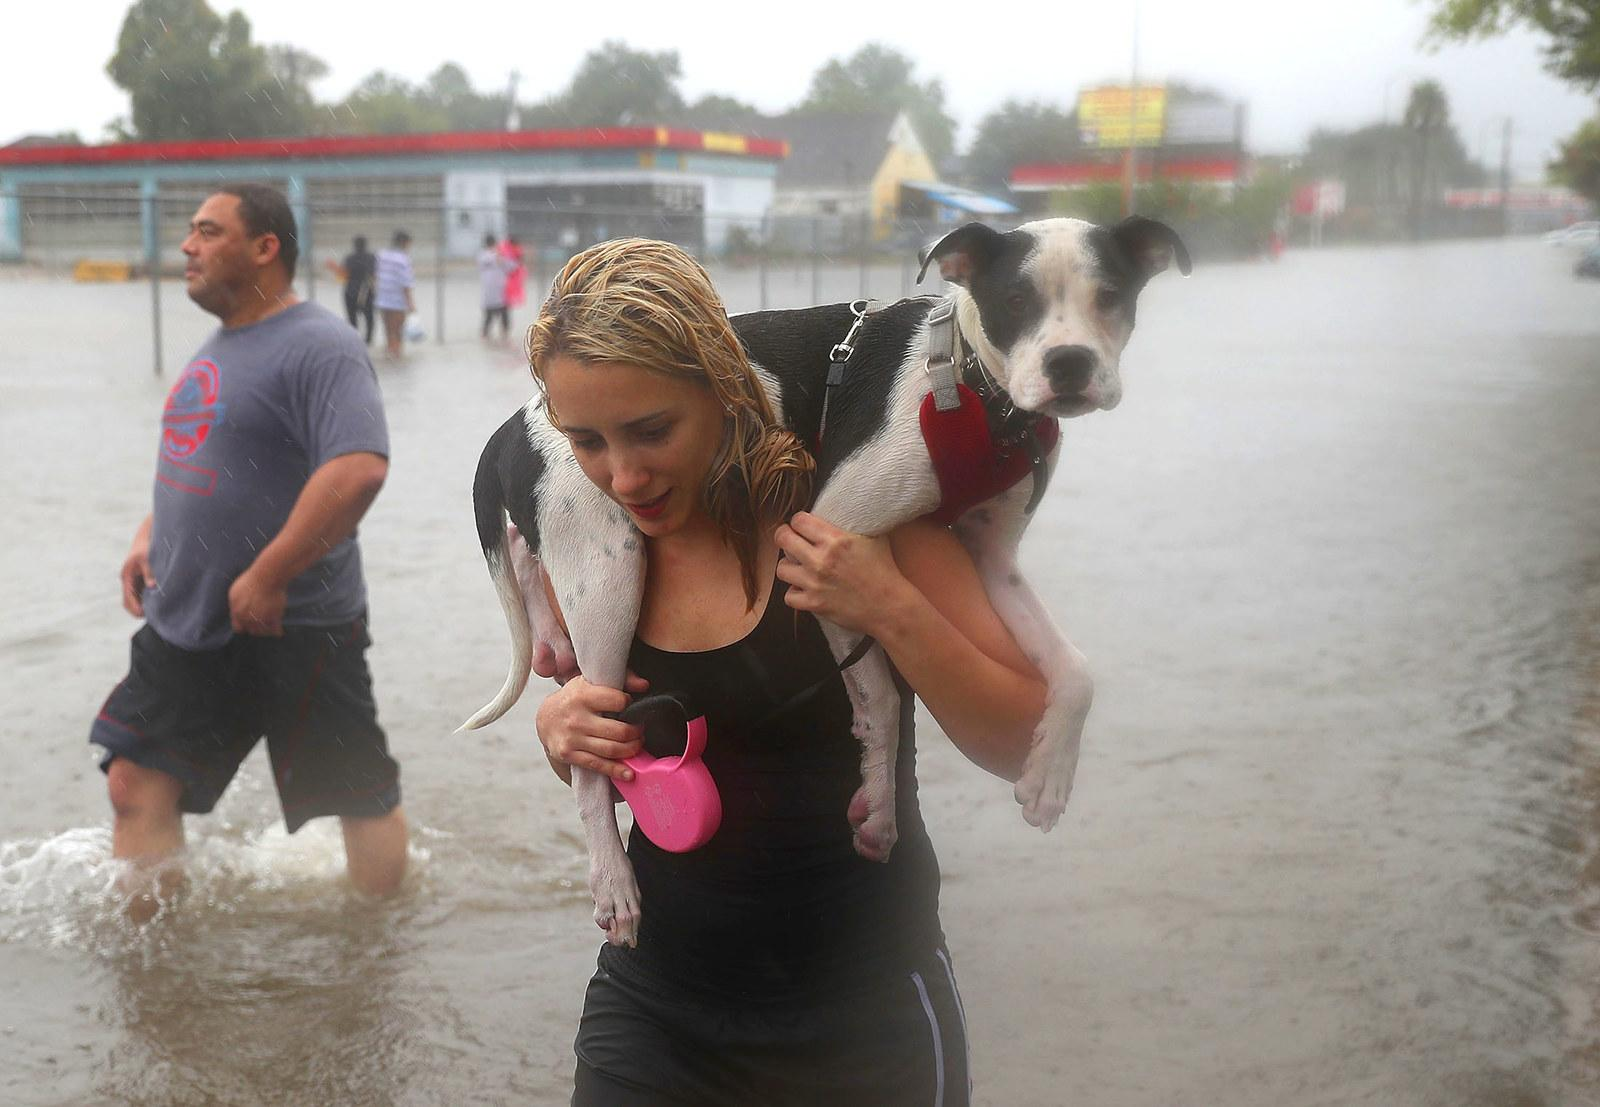 Naomi Coto carries Simba on her shoulders as they evacuate their home after the area was inundated with floodwater from Tropical Storm Harvey on Aug. 27 in Houston.